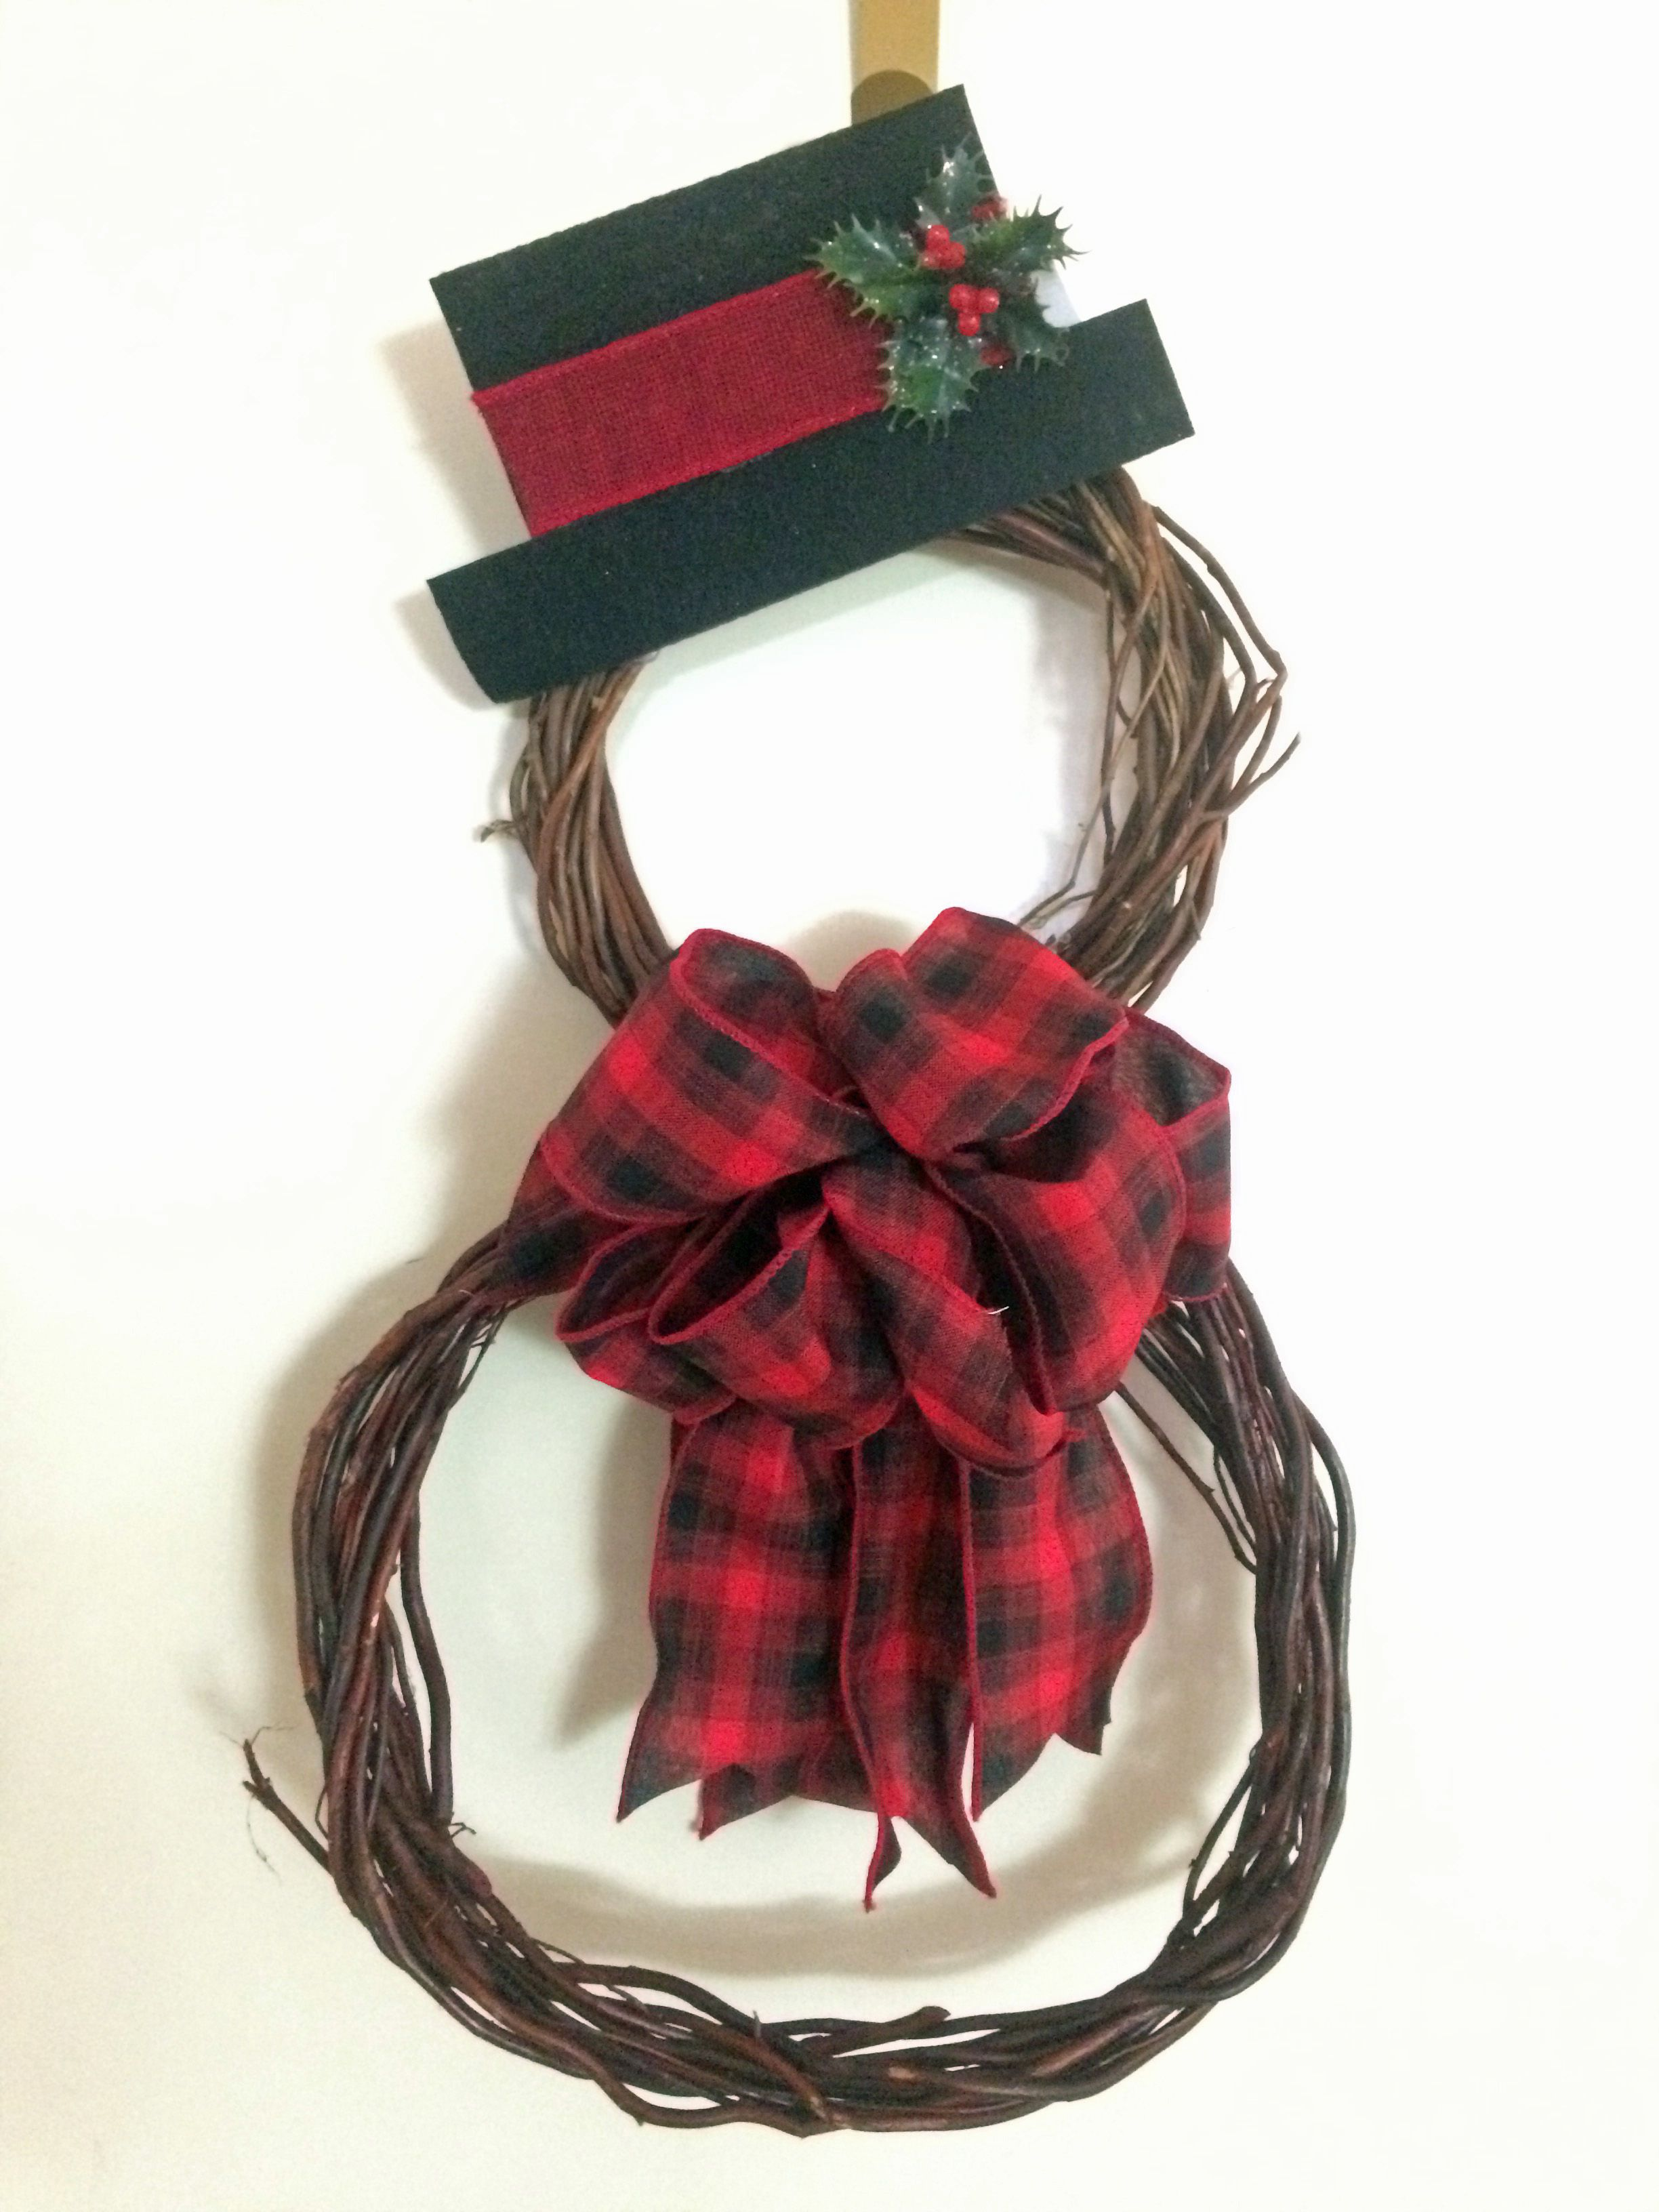 e3f72a124 Made this with 2 grapevine wreaths from the Dollar Tree, use stiff ...